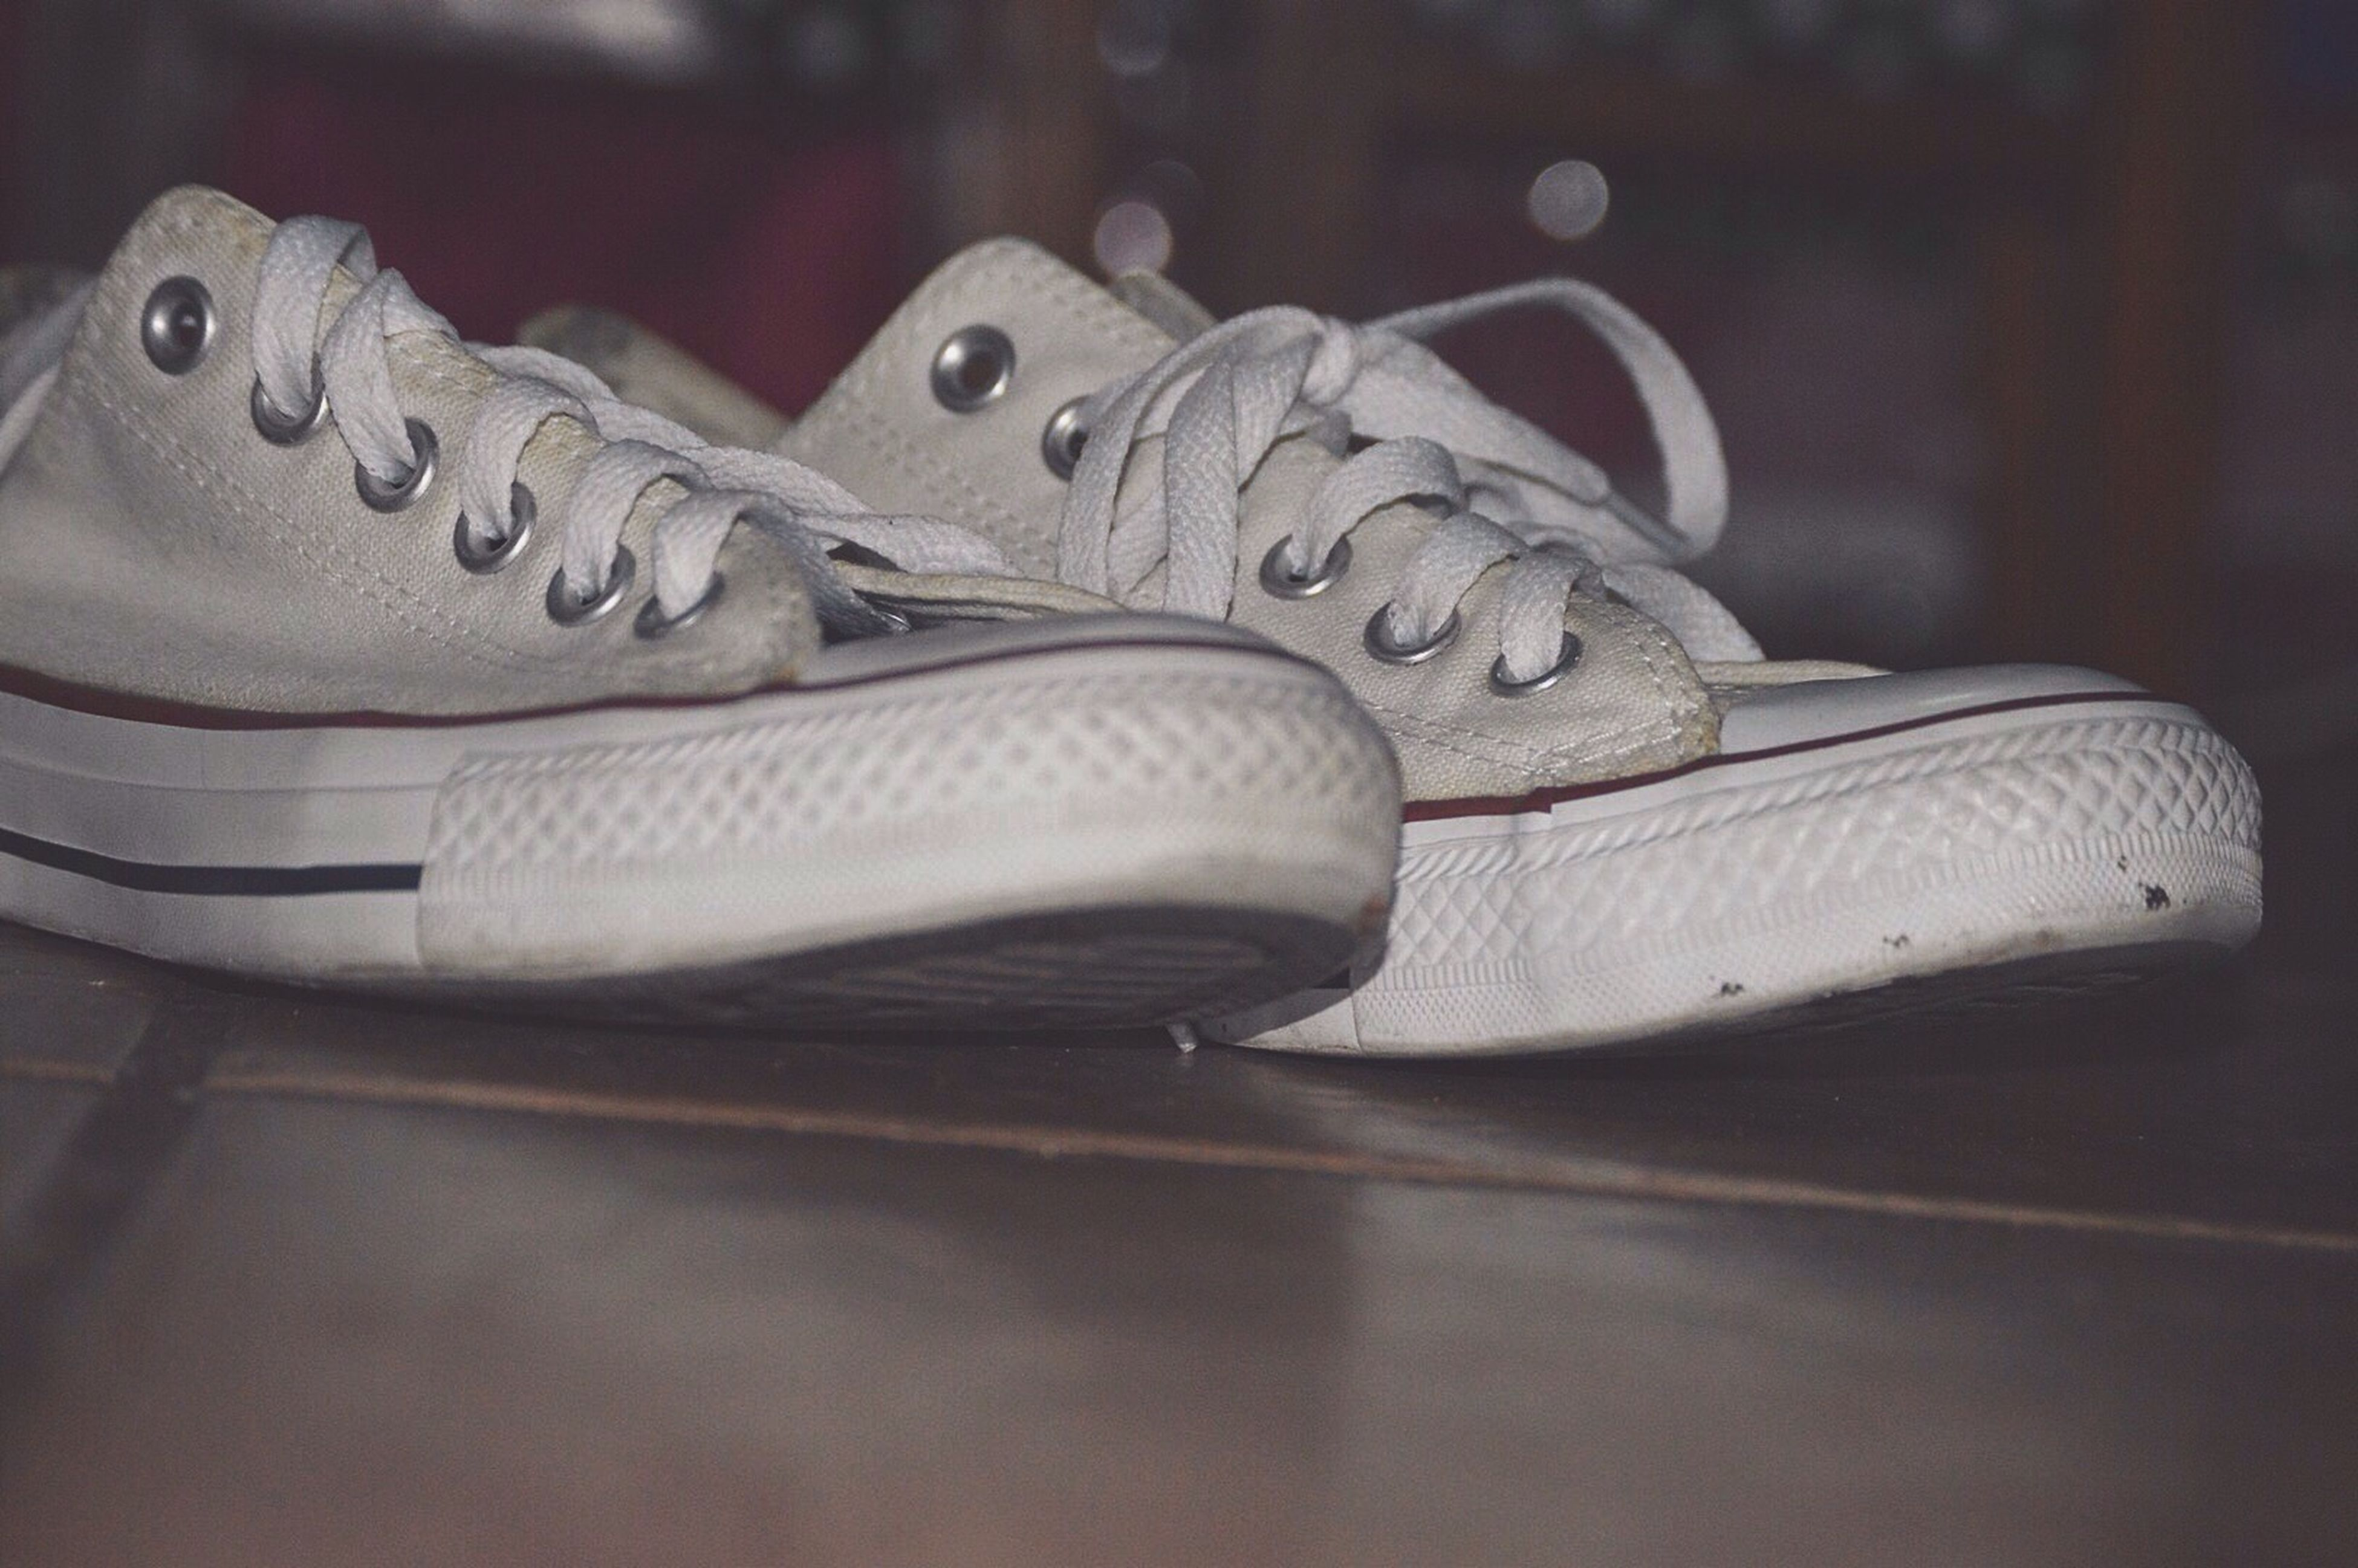 indoors, close-up, art and craft, focus on foreground, still life, art, no people, animal representation, part of, creativity, white color, cropped, high angle view, shoe, statue, table, selective focus, day, footwear, human representation